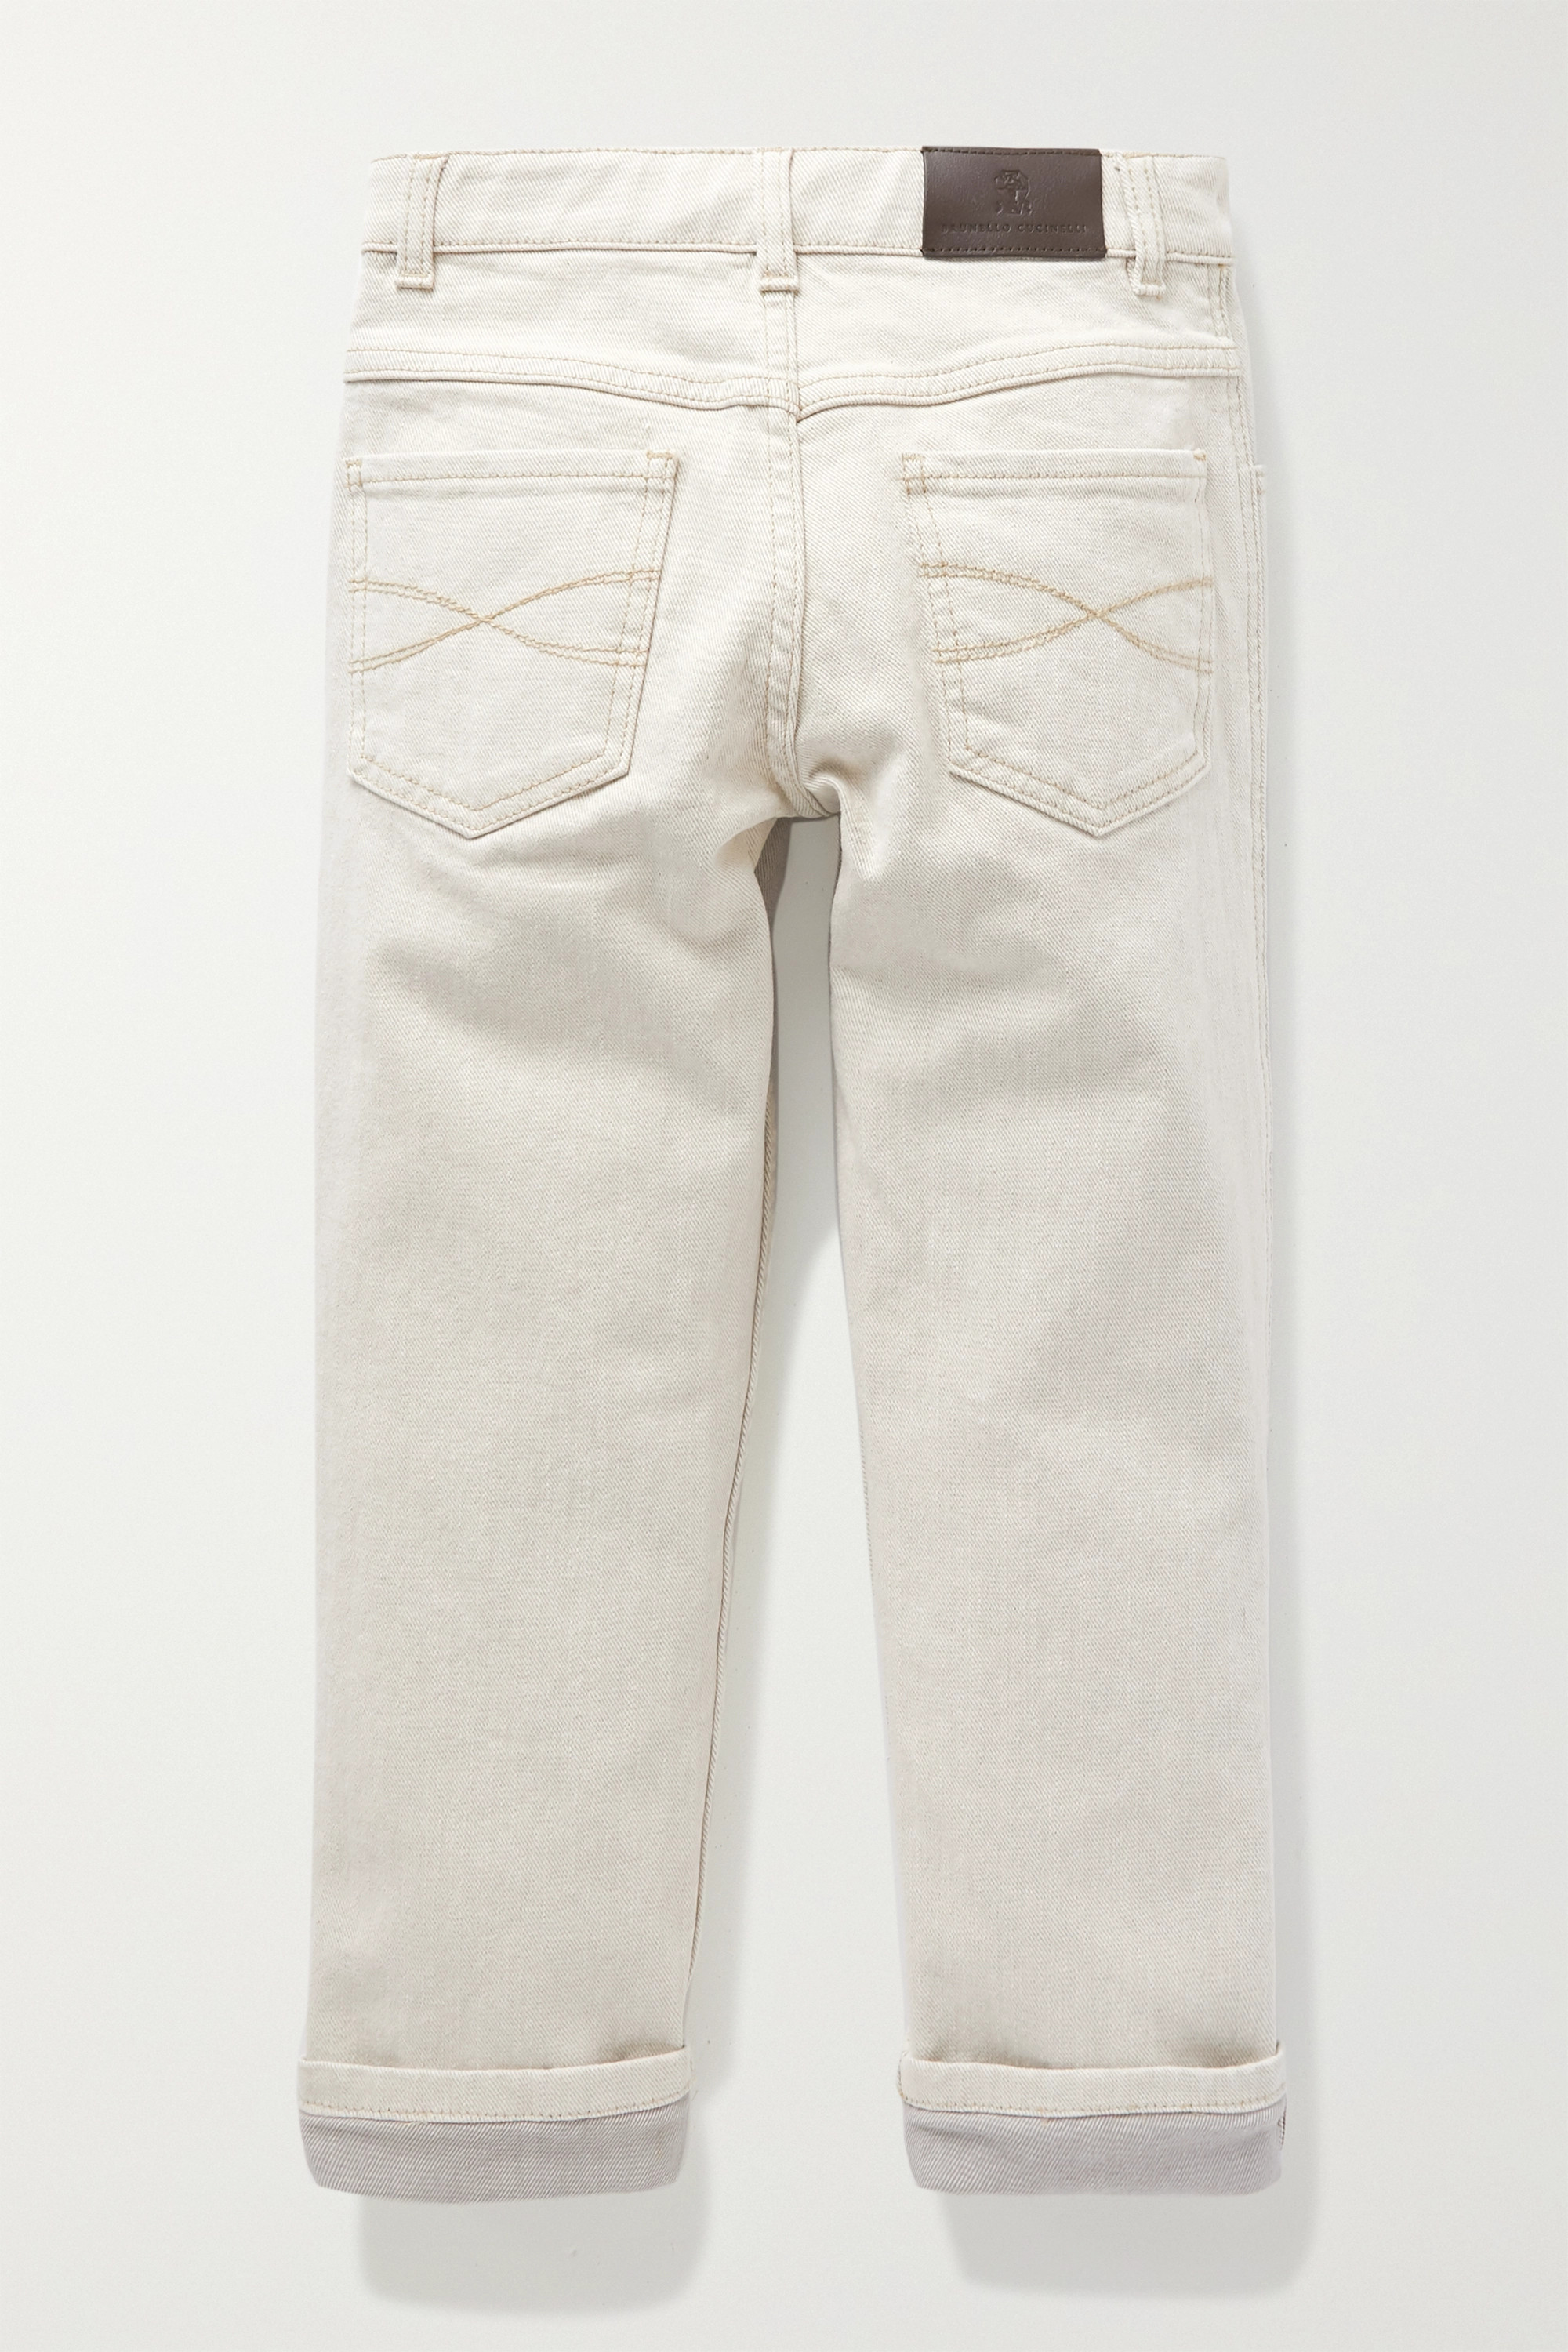 Brunello Cucinelli Kids Ages 8 - 10 bead-embellished jeans